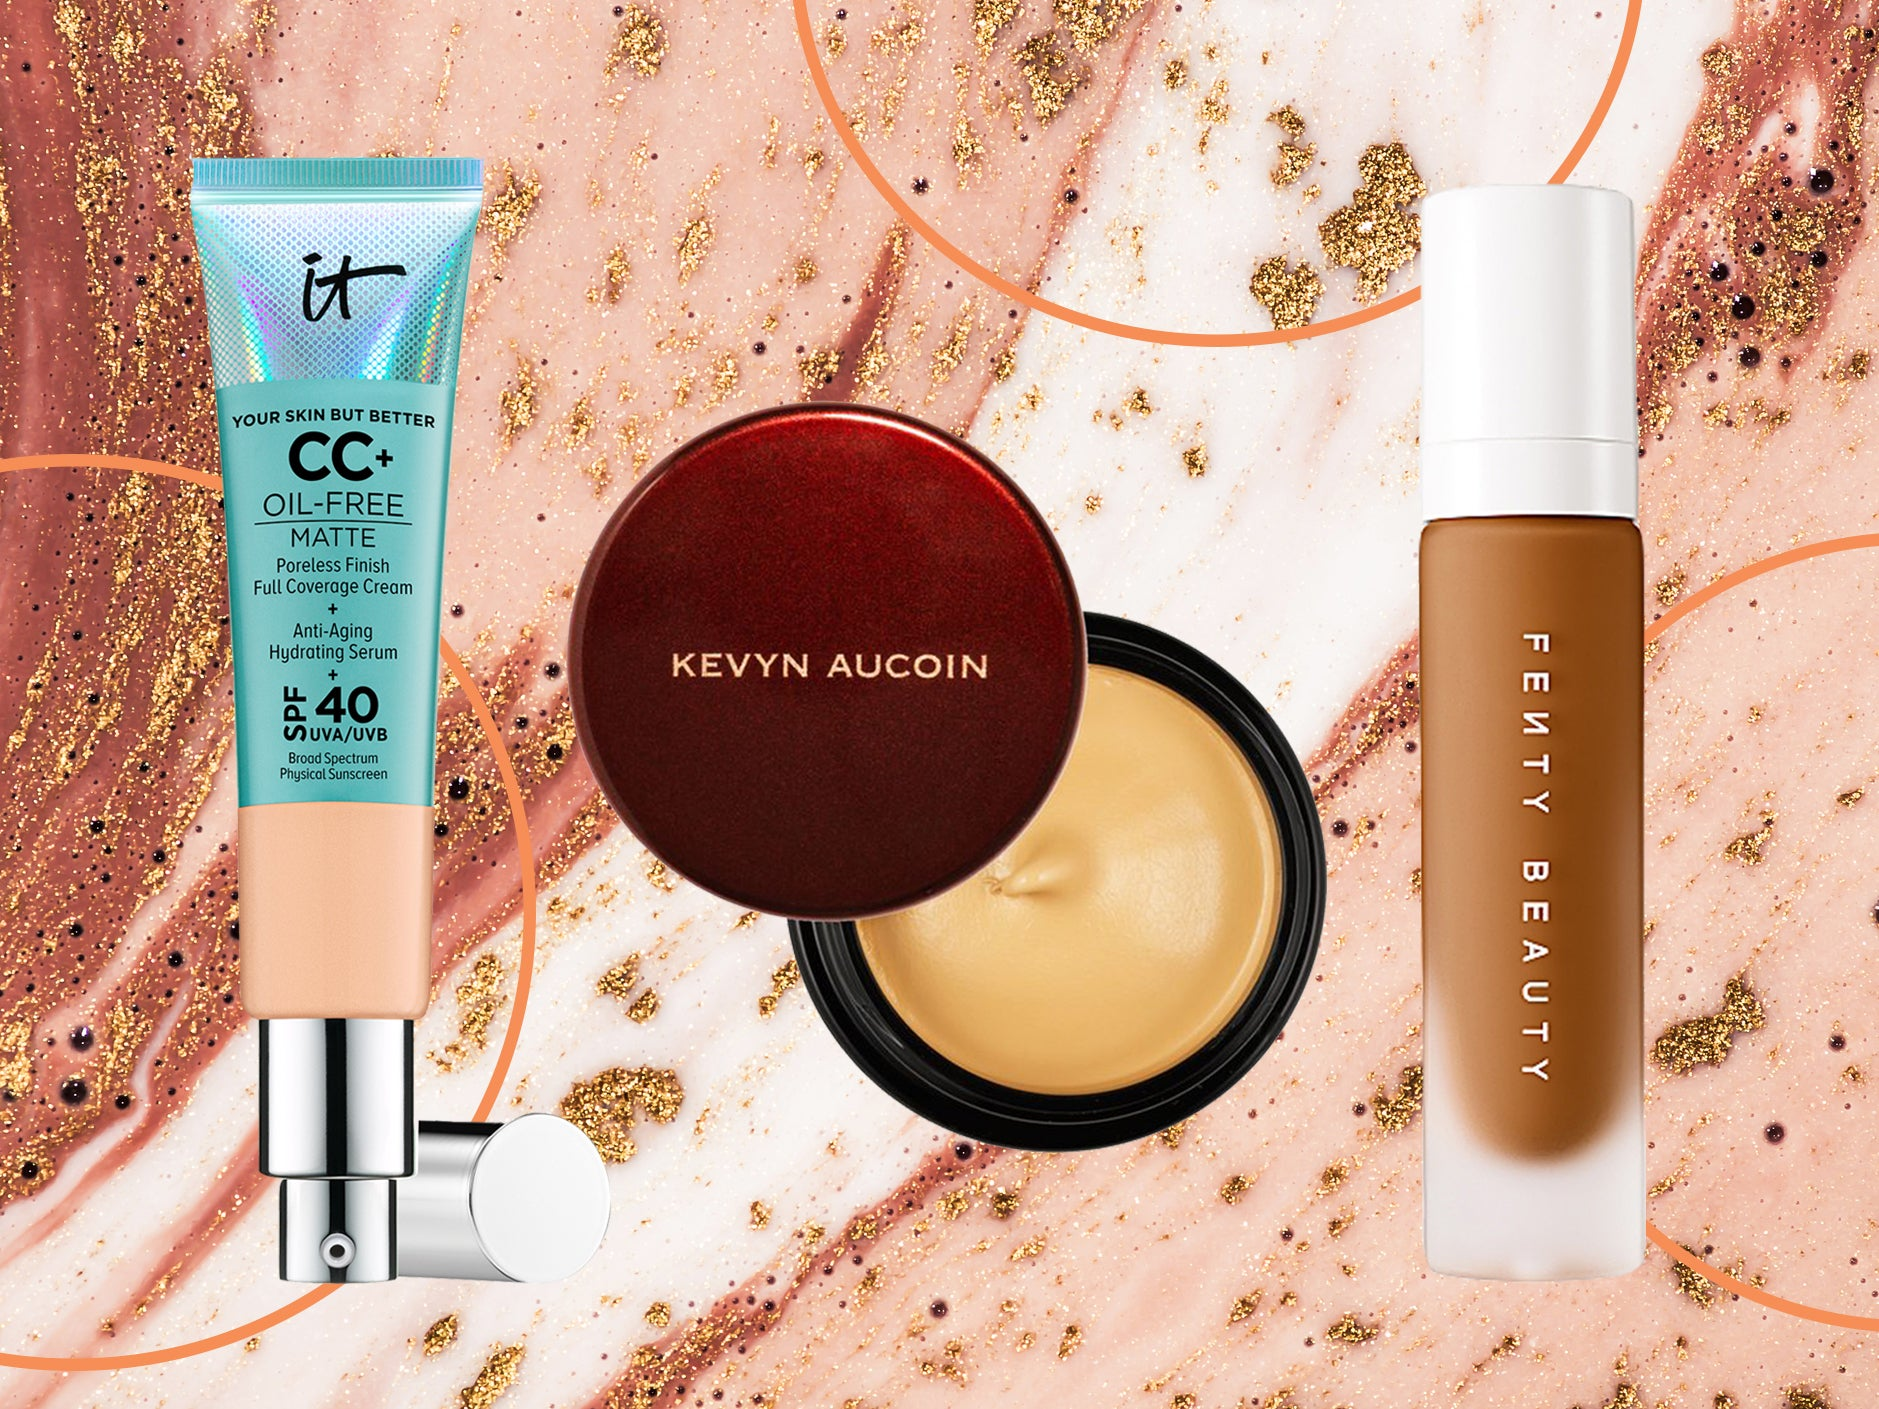 10 best foundations for acne-prone skin that cover blemishes without causing breakouts